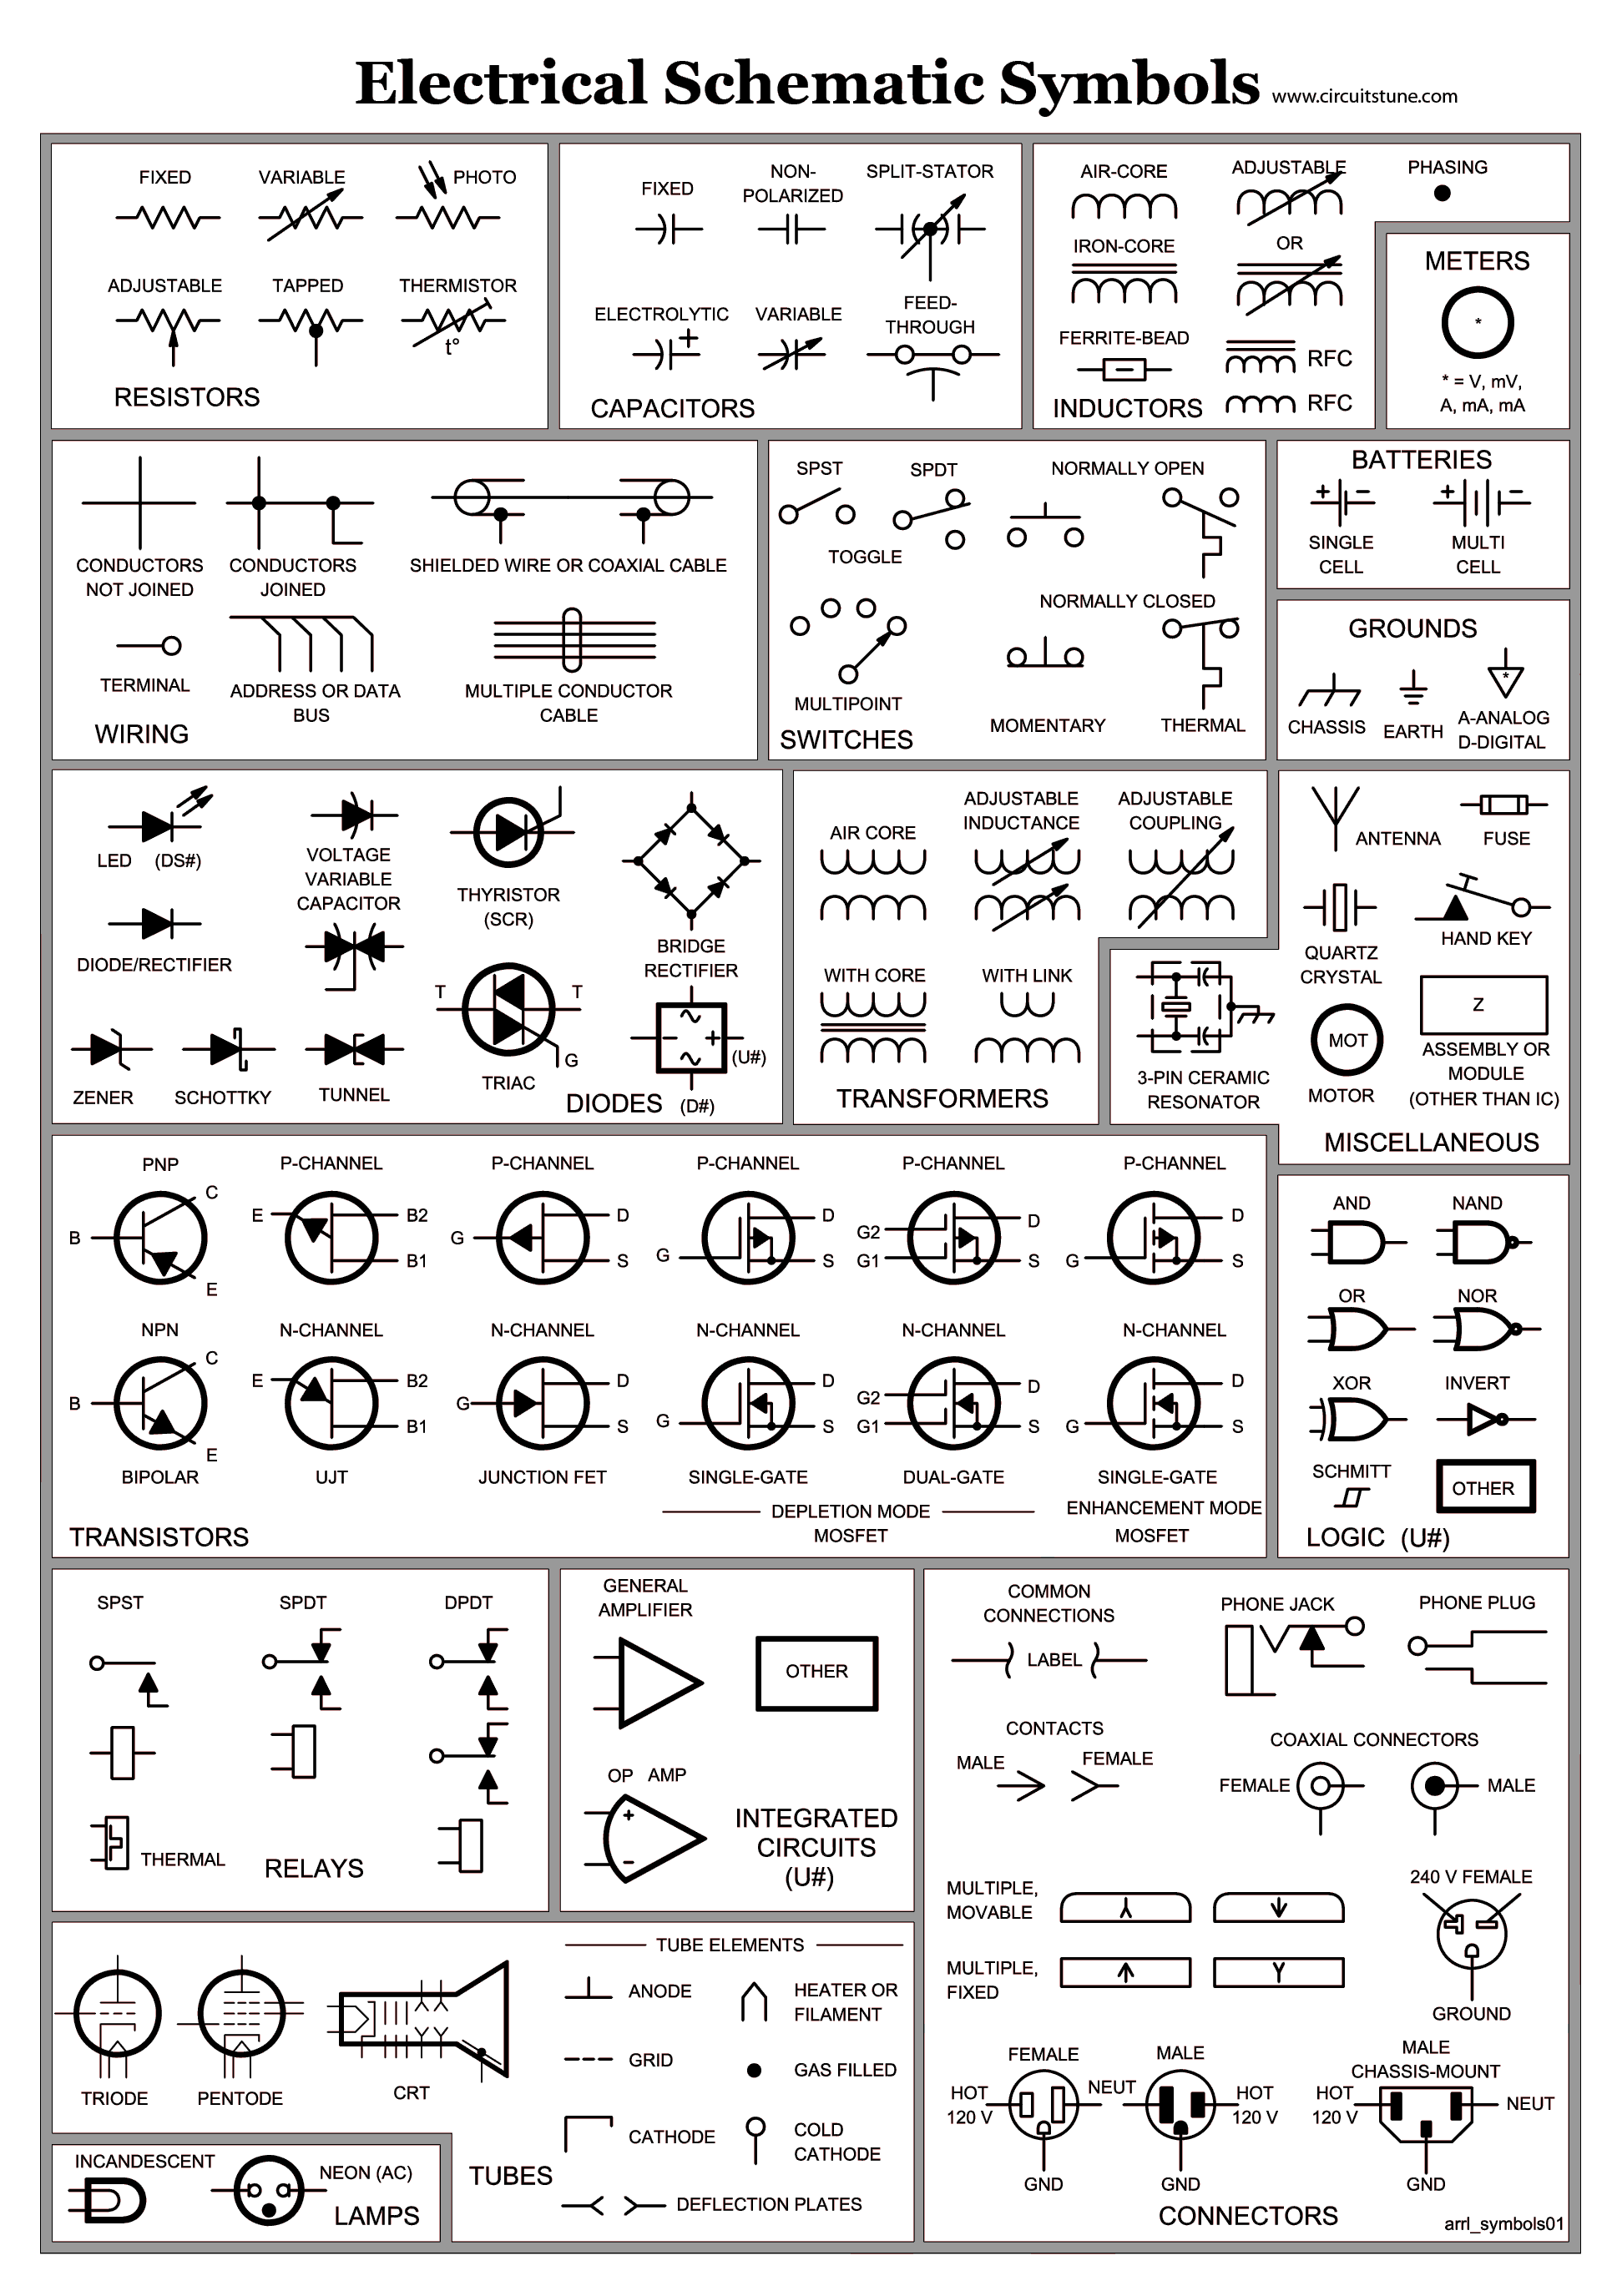 Electrical Schematic Symbols | Electrical schematic symbols, Electrical  circuit diagram, Electrical wiring diagramPinterest